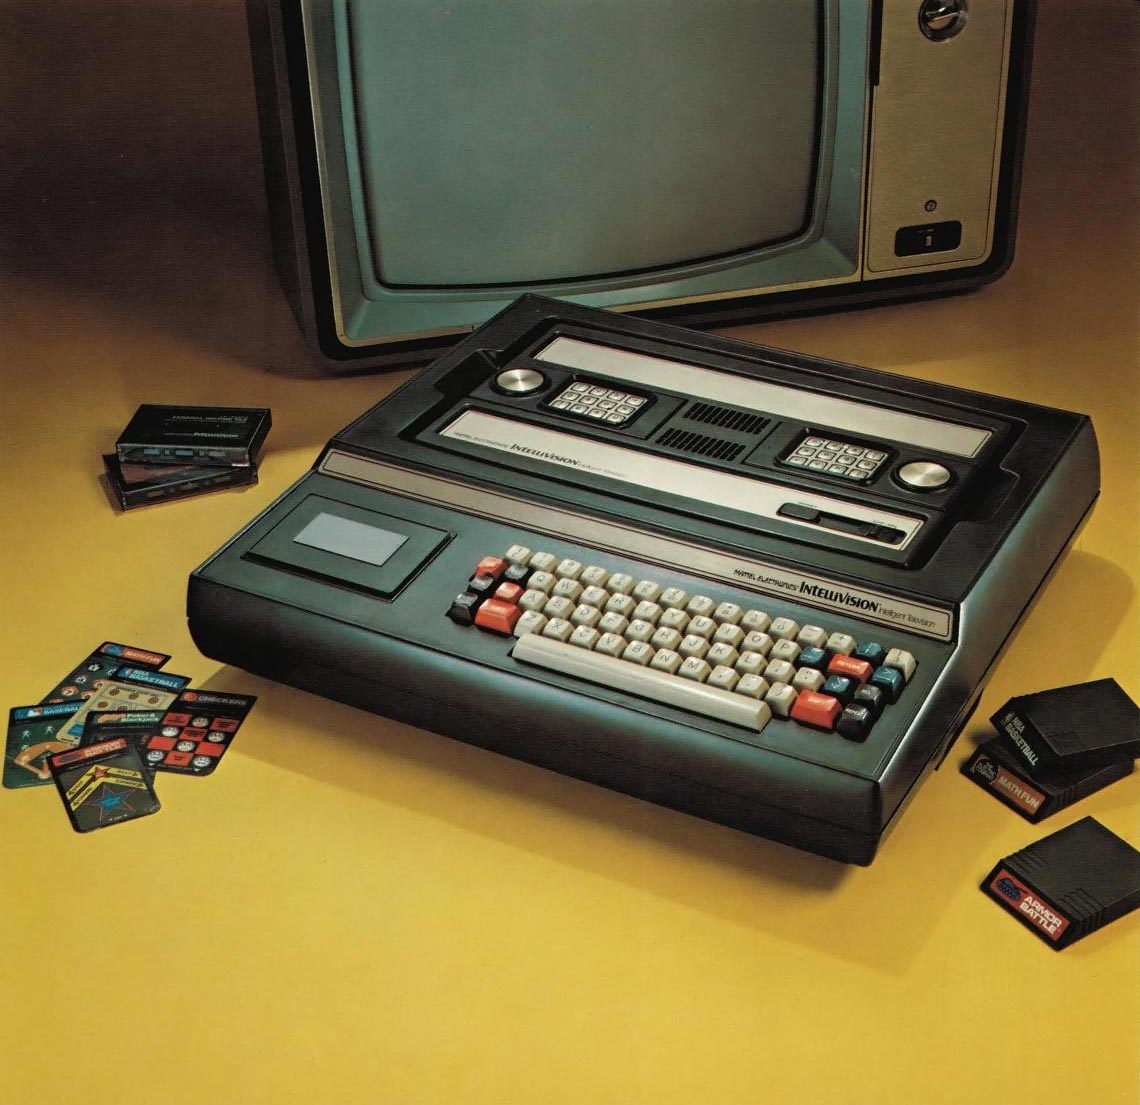 Keyboard and Master Component of the Intellivision, a video game system by Mattel